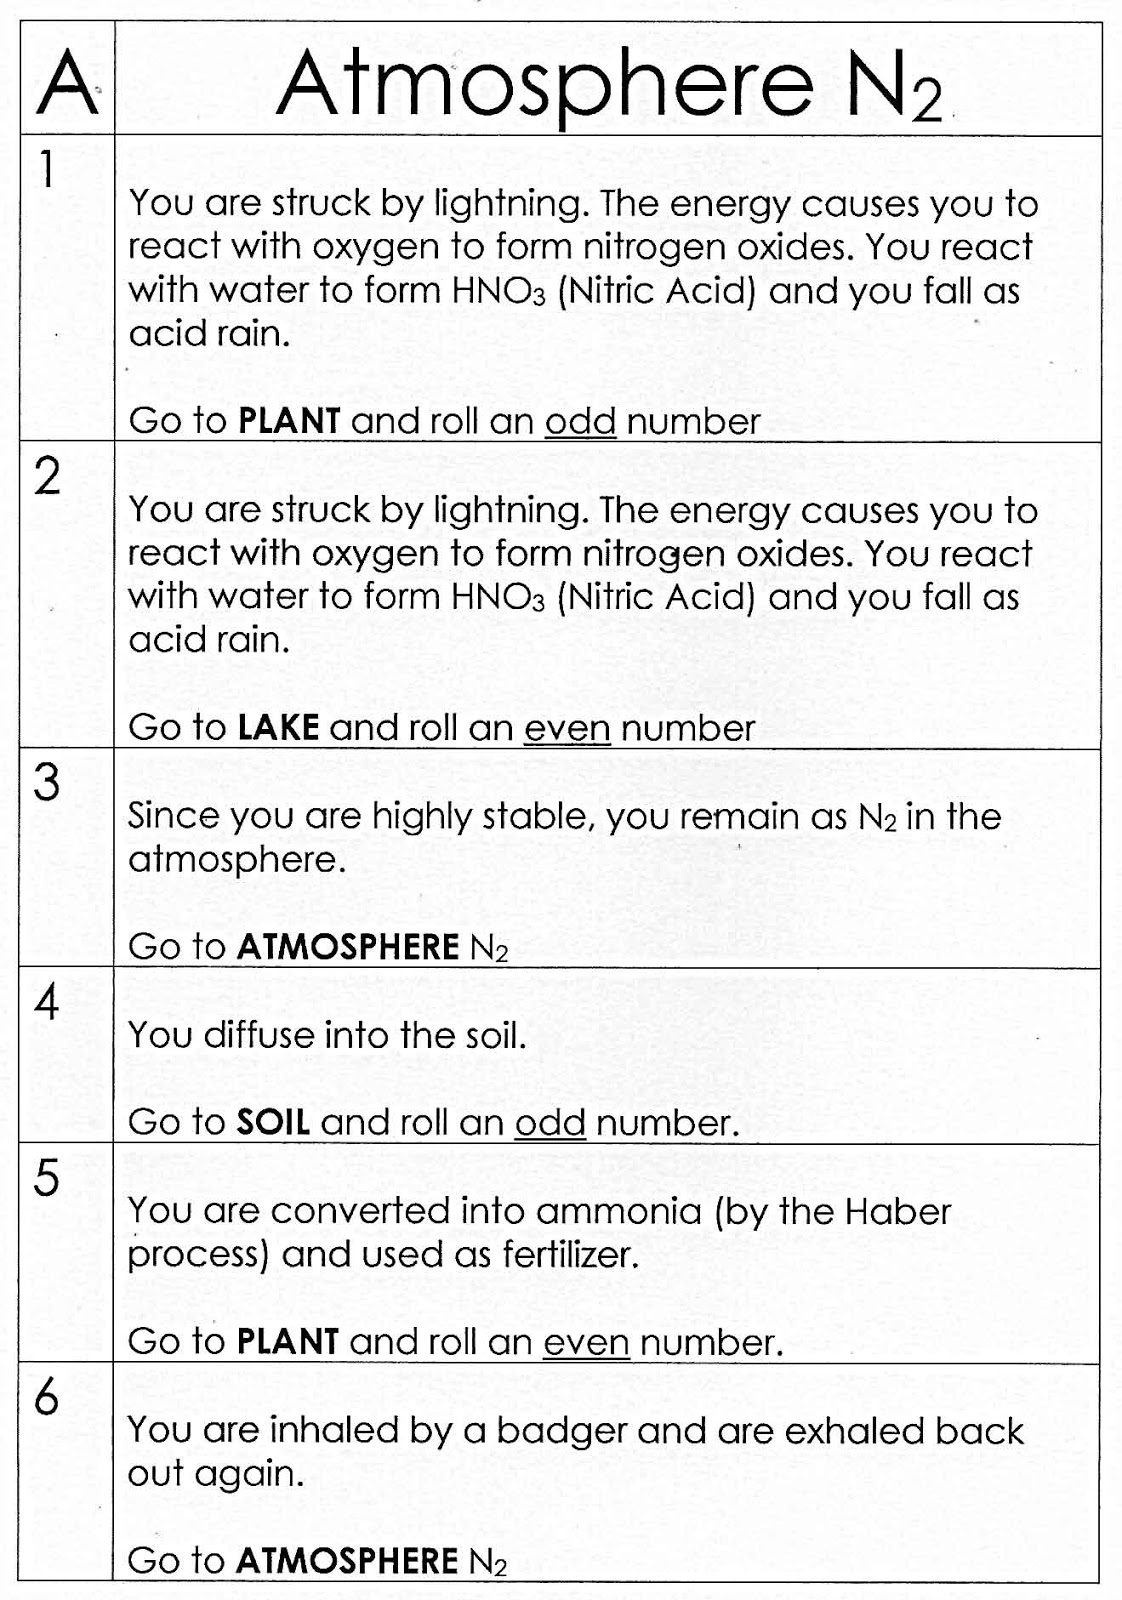 Worksheets Atmosphere Worksheets 100 free science worksheets the nitrogen cycle game in atmosphere a lake etc simply roll die to see where you are transferred and by what means keep record of all y